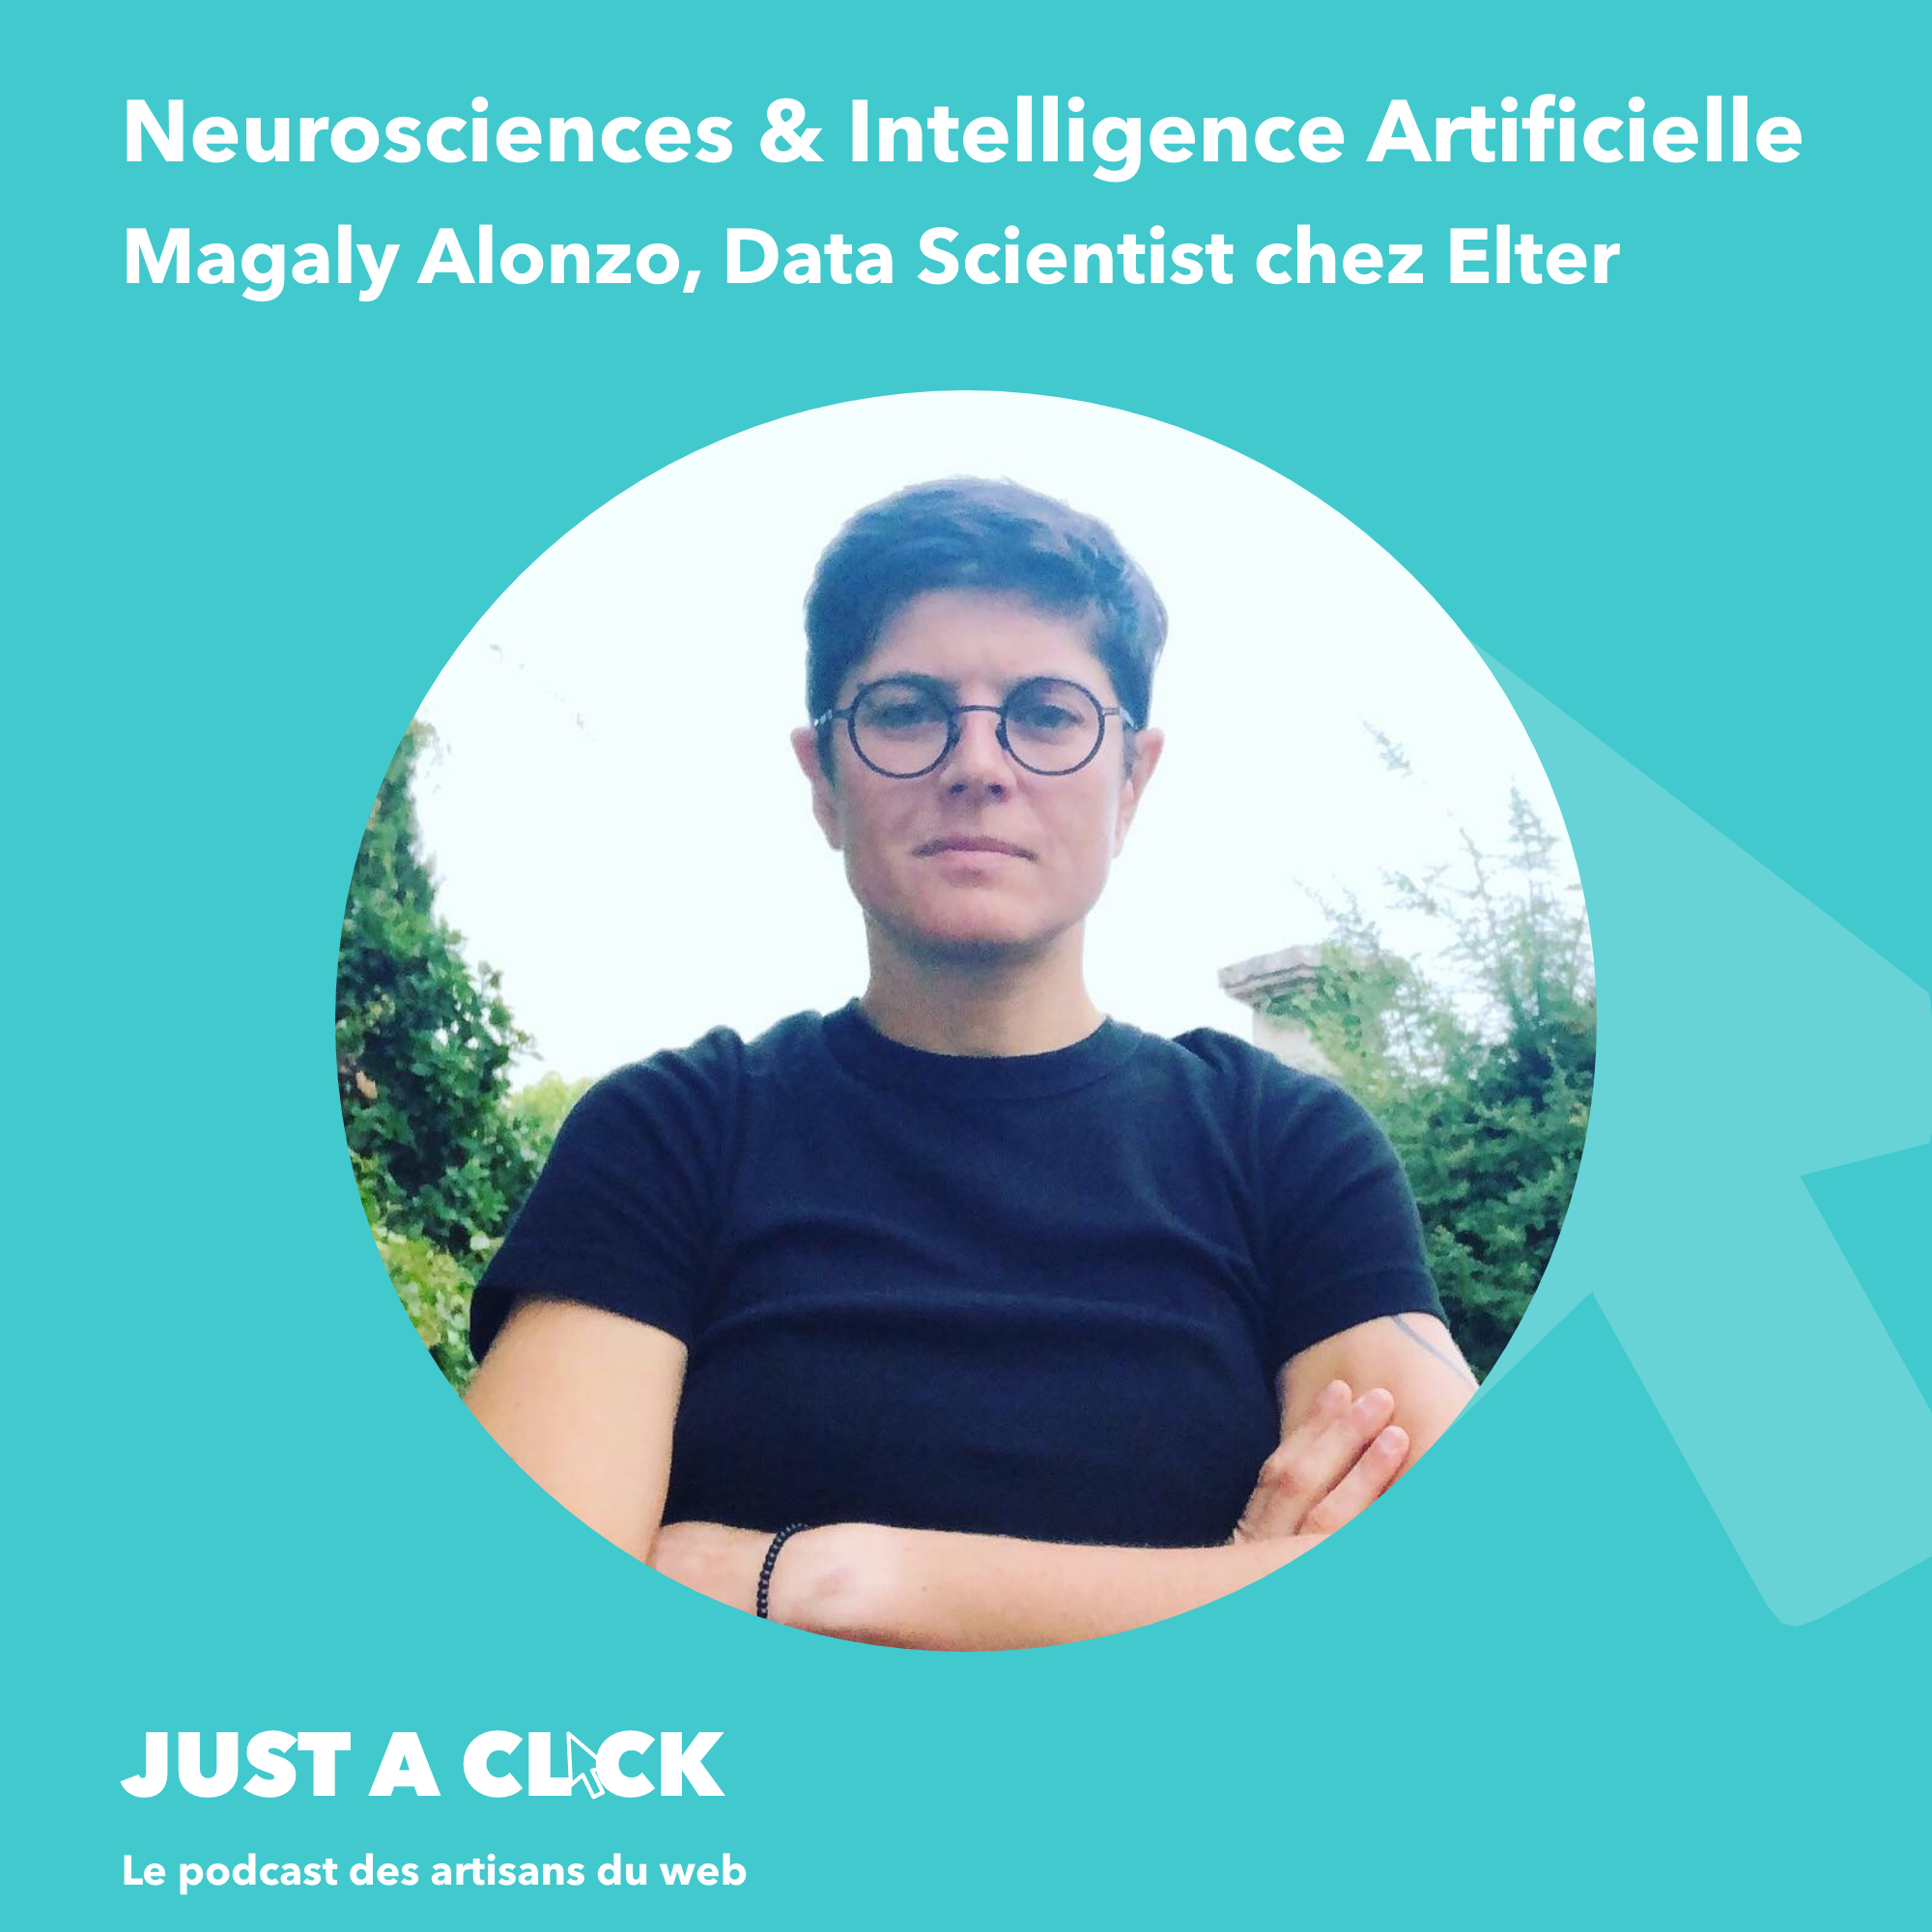 6. Magaly Alonzo, Data Scientist chez Elter – Des neurosciences à l'intelligence artificielle